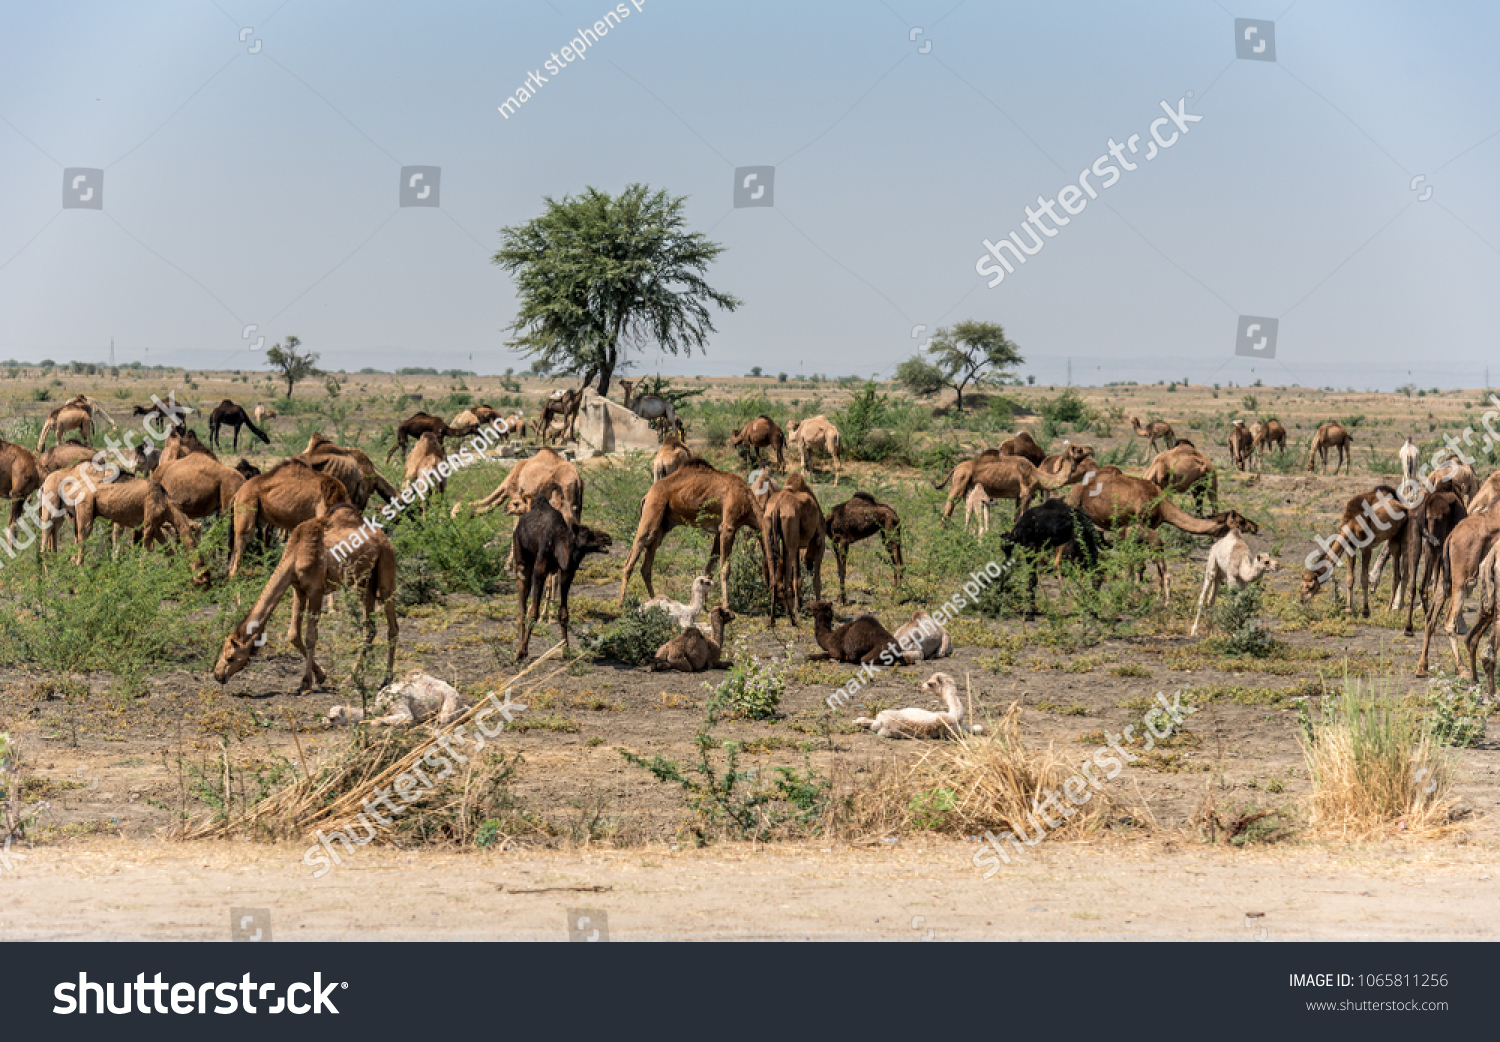 stock-photo-a-herd-or-caravan-train-of-i